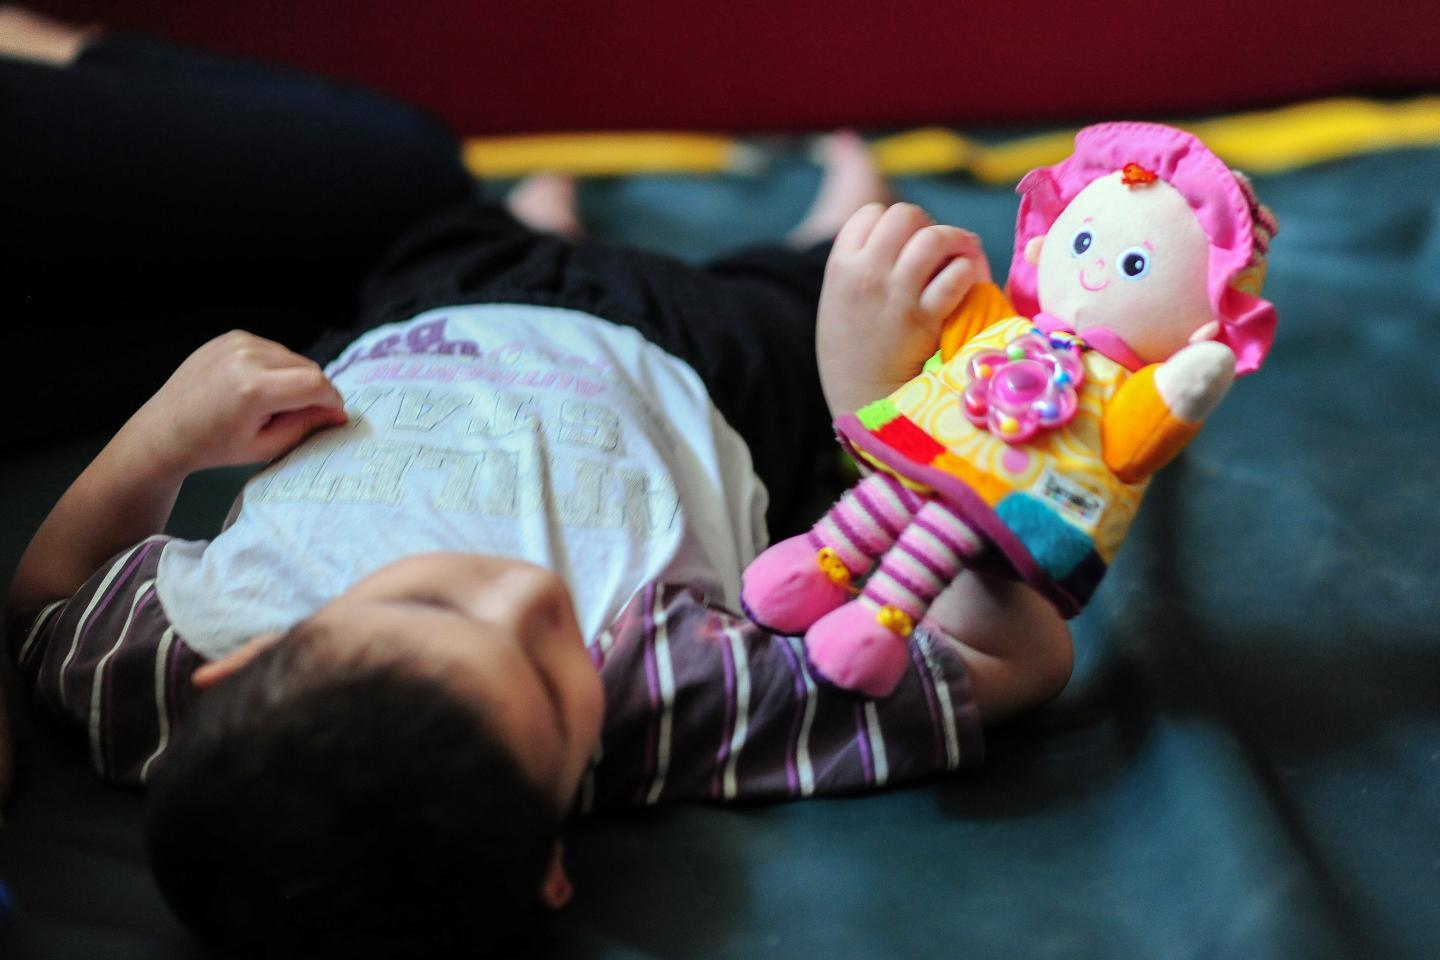 A child laying on the floor is looking at a doll that he holds in his right hand